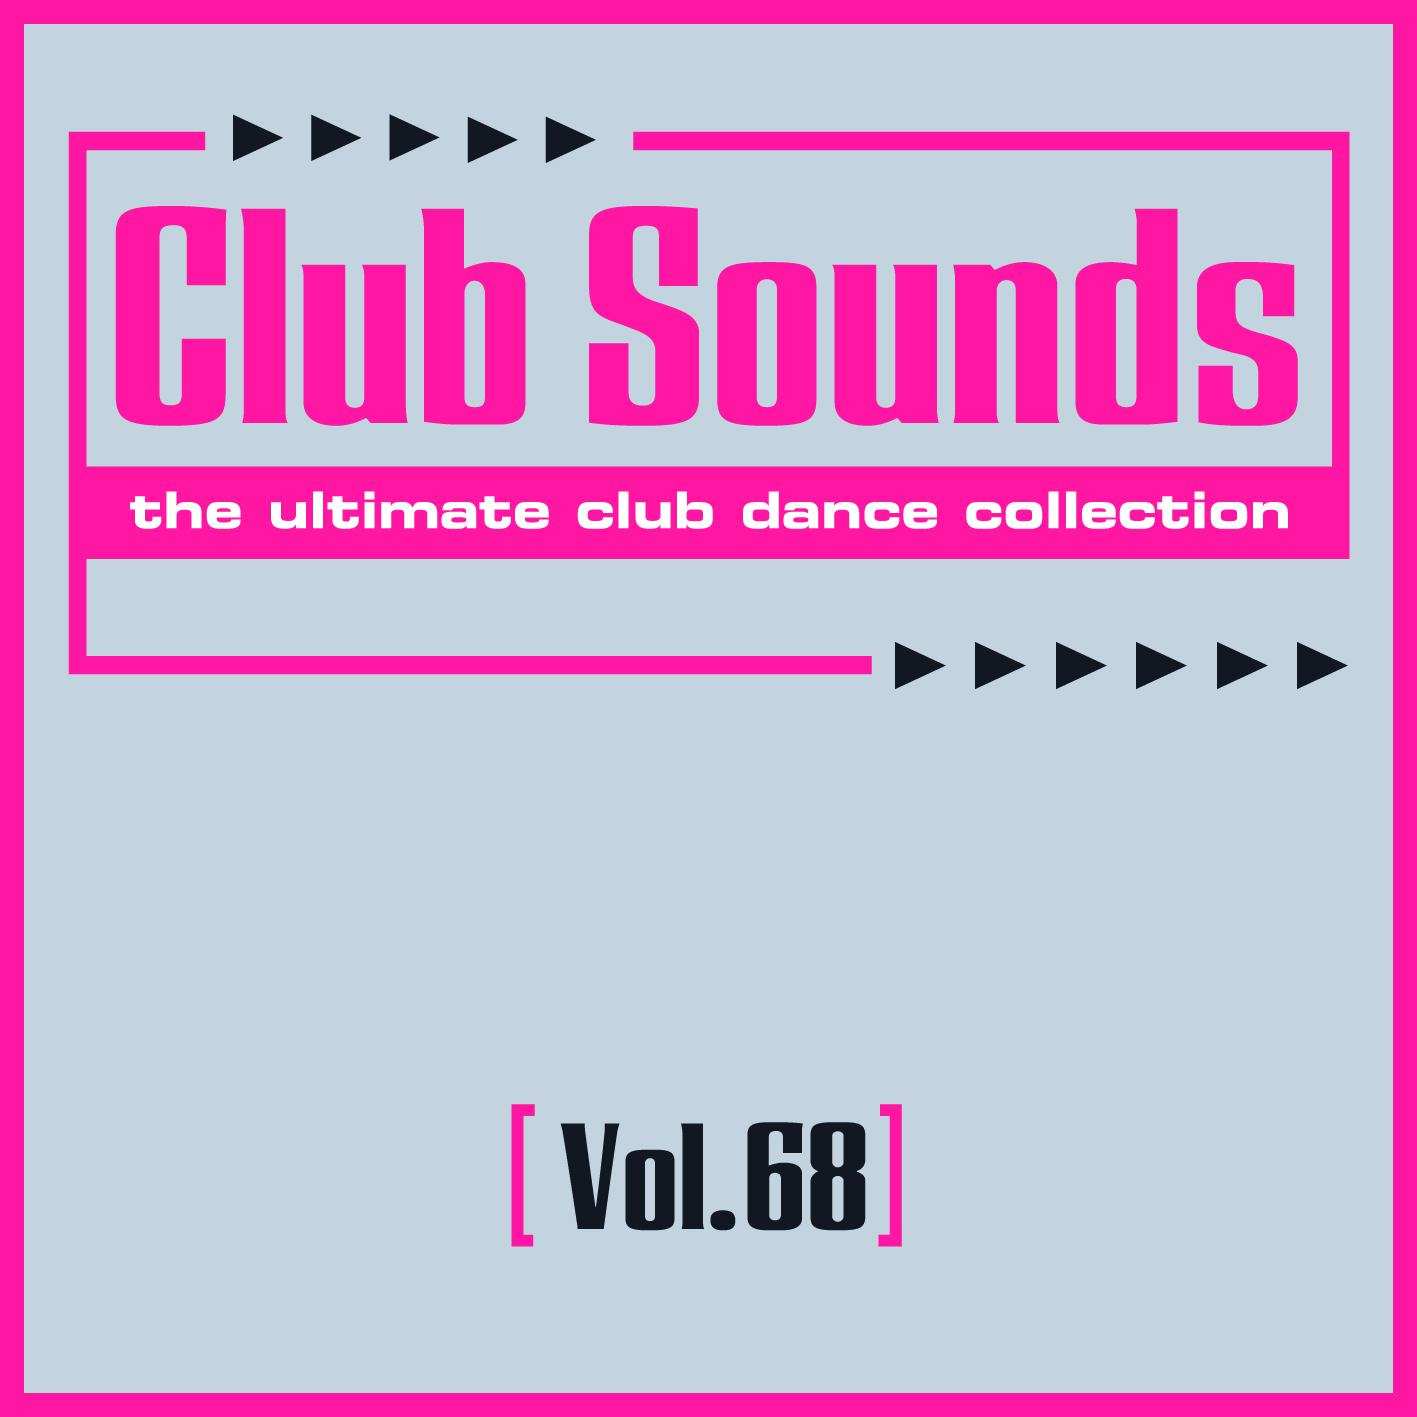 Club Sounds Vol 68